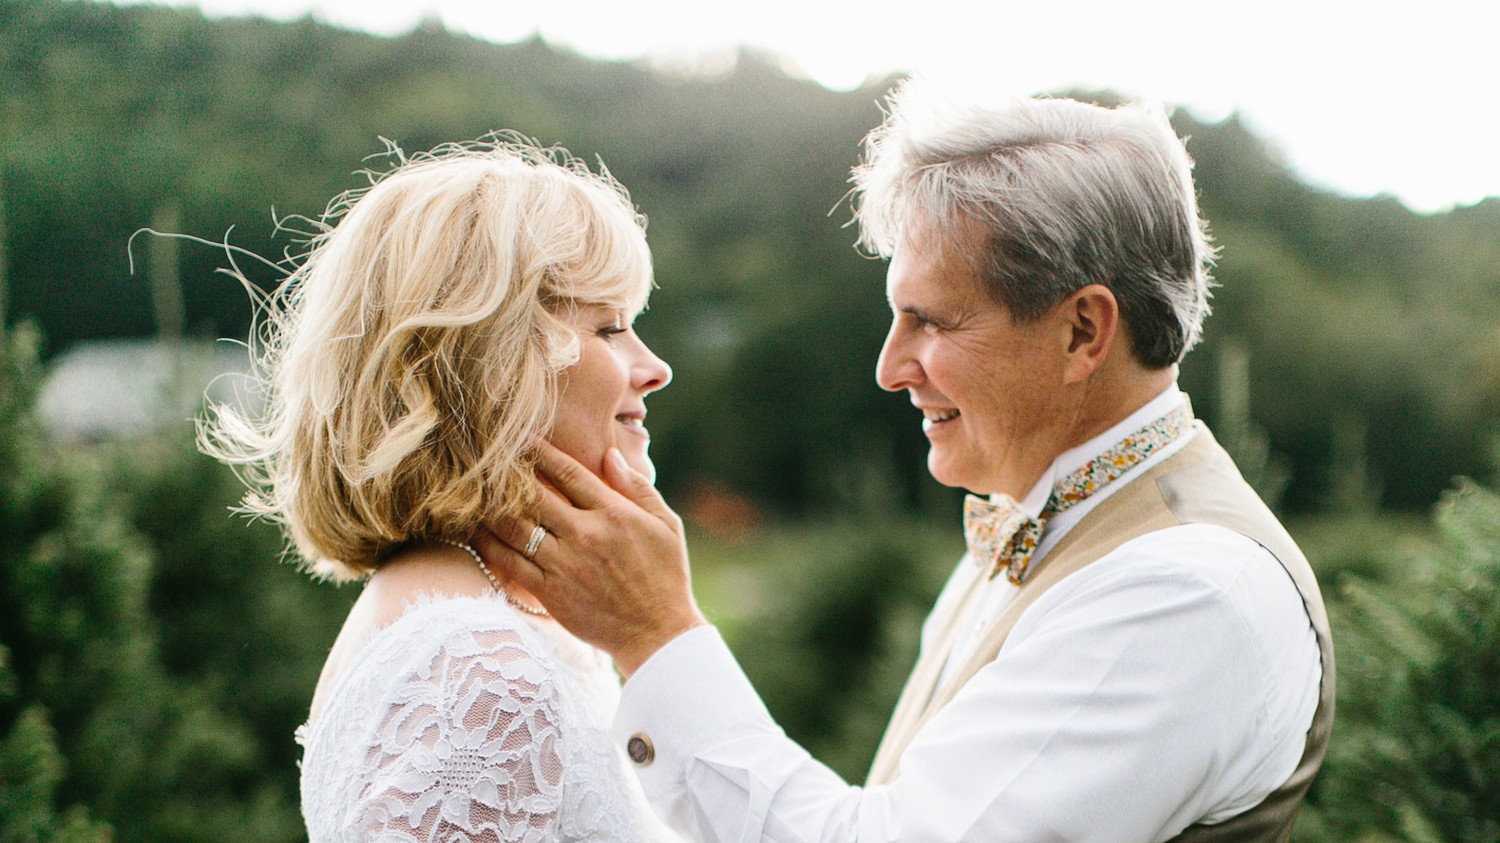 Is There A Different Dress Code For Older Brides?